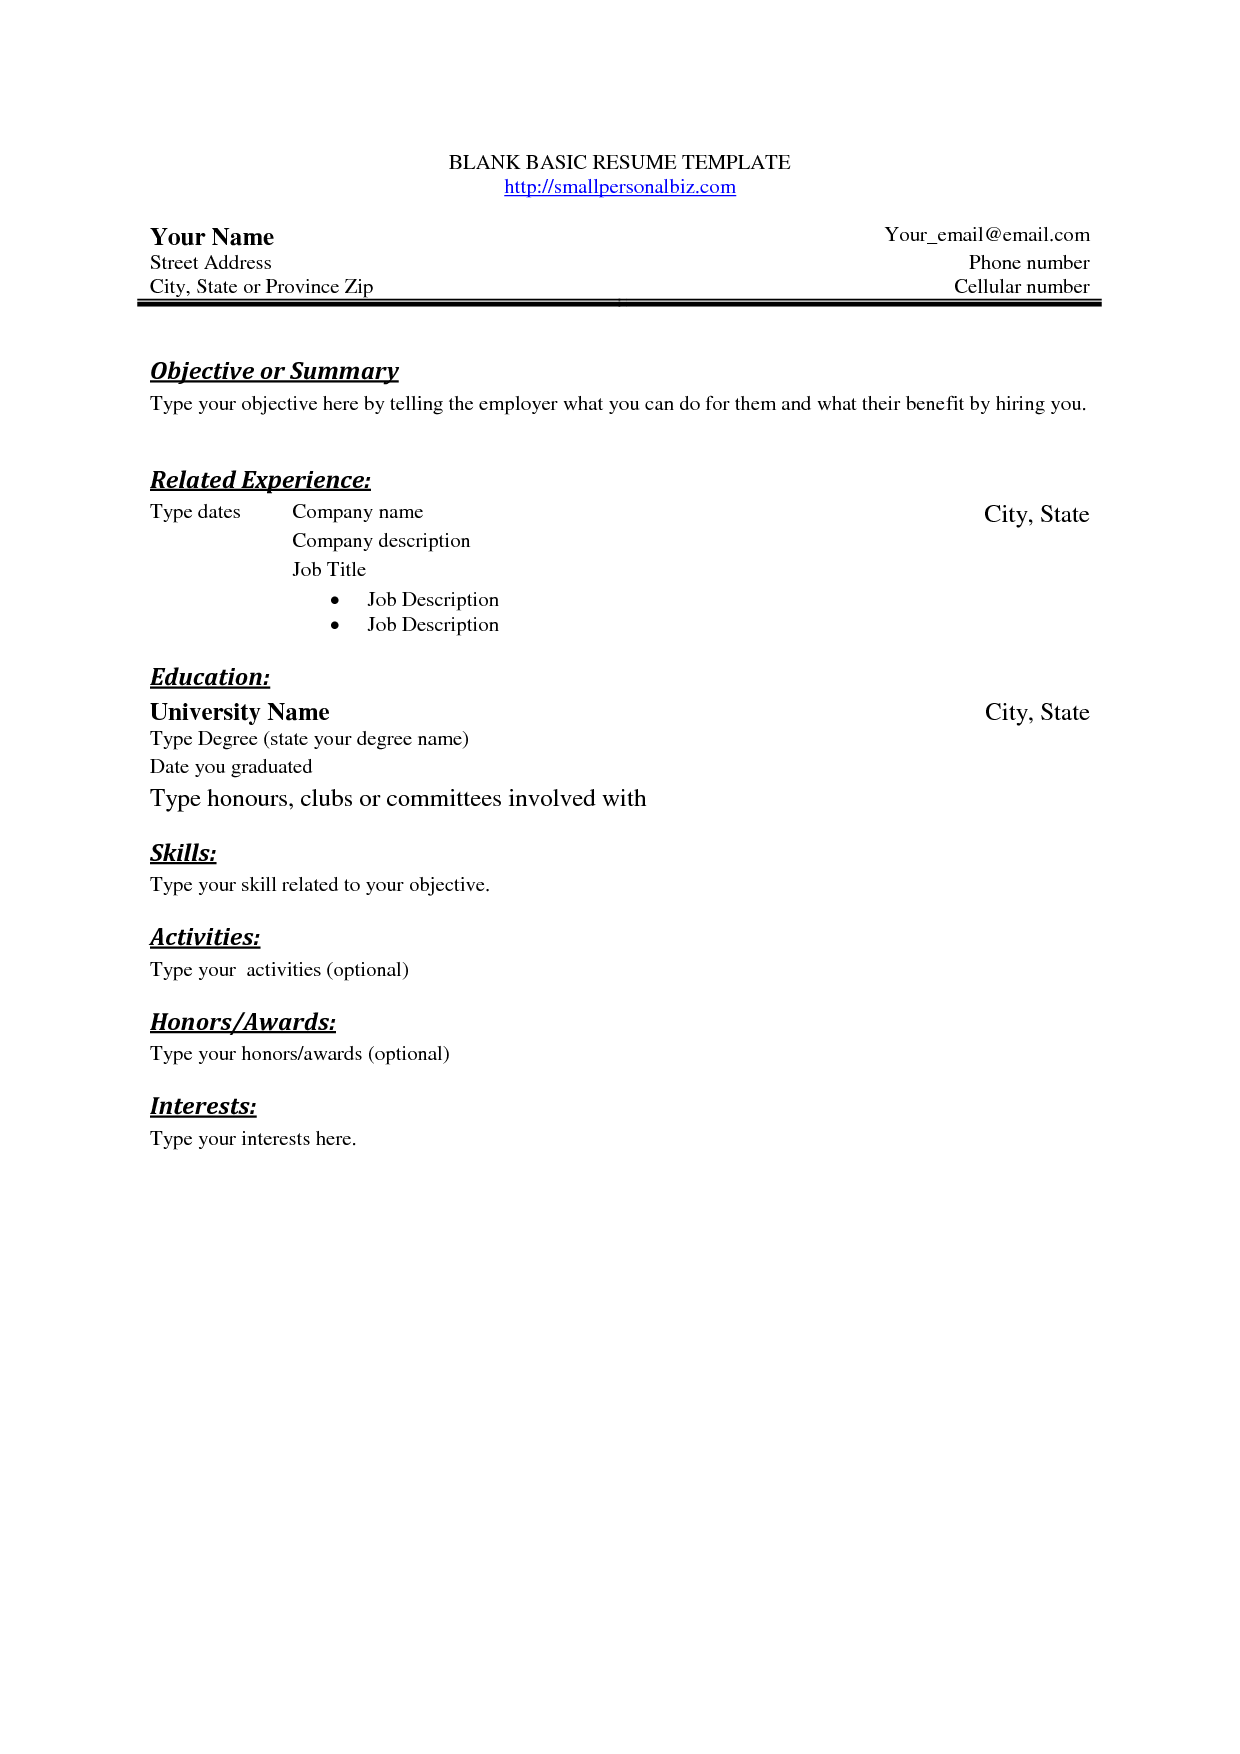 Stylist And Luxury Simple Resume Layout 10 Free Basic Blank Resume Template    Resume Example  Example Resume Layout